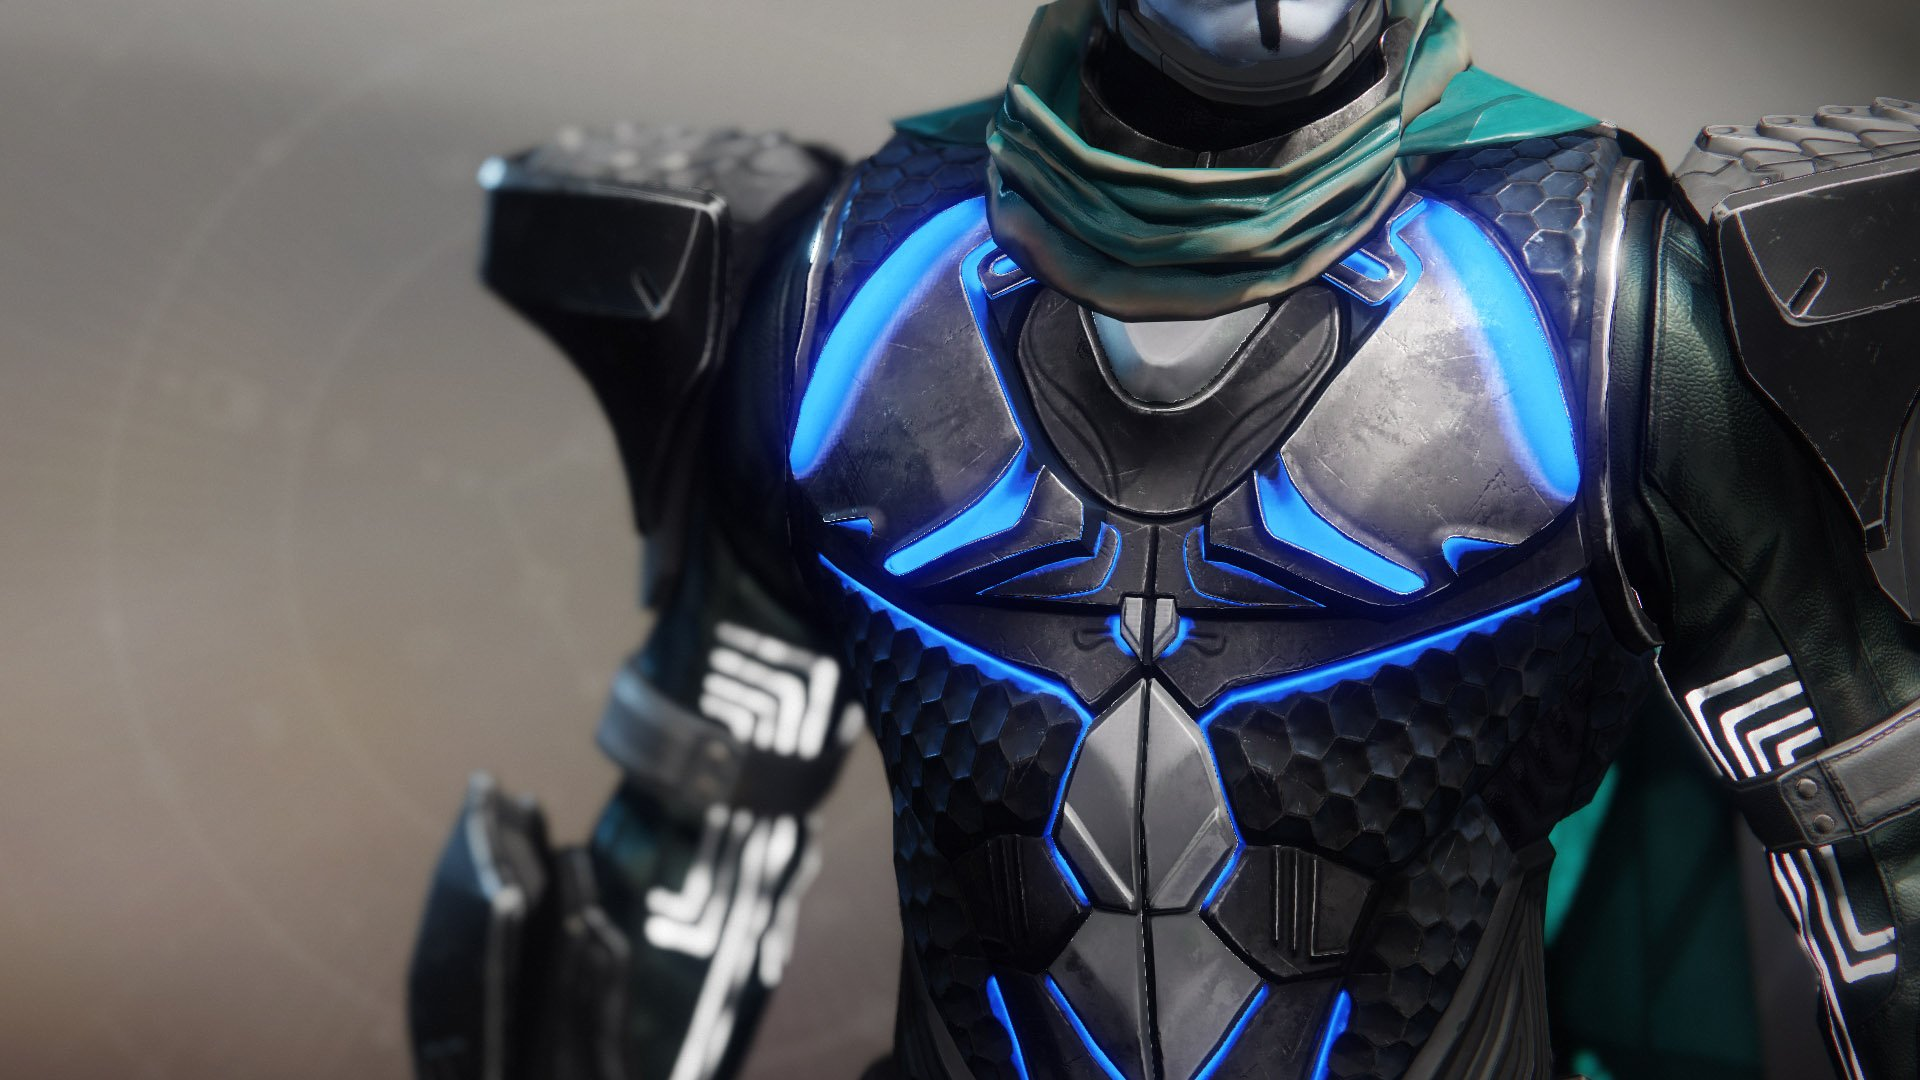 Raiju S Harness Disabled In Destiny 2 Shacknews Destiny 2's new season of the worthy update has arrived and loyal fans are able to start trying to help ana bray to restore the warmind's full arsenal so she can defend the last city from the almighty. raiju s harness disabled in destiny 2